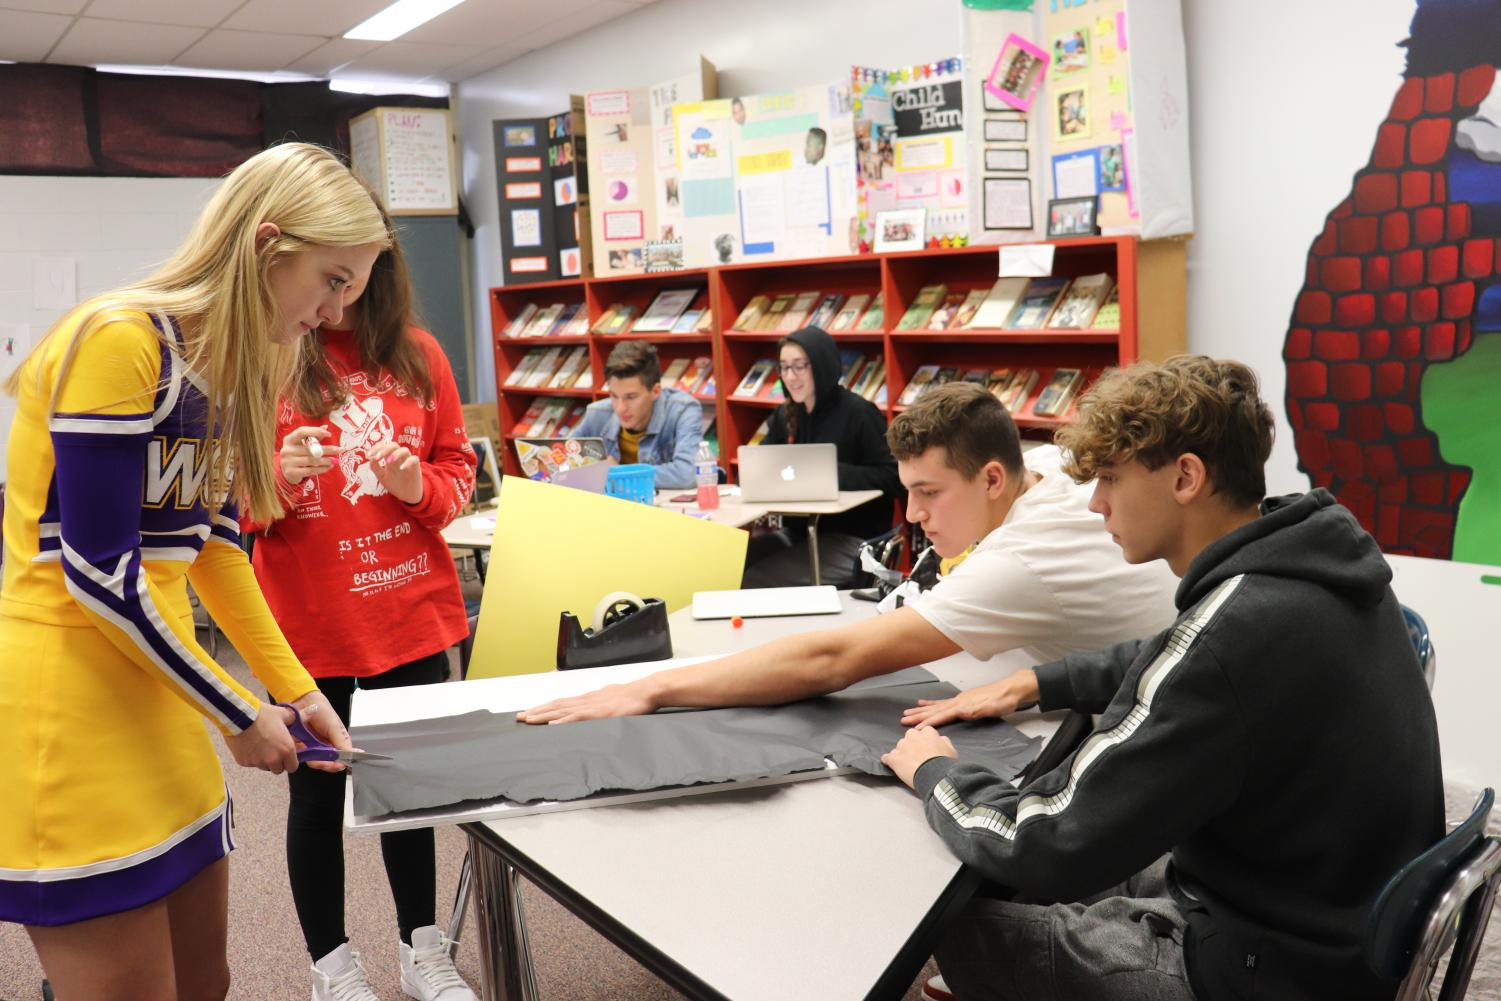 Juniors Karlee Reyome, Julia White, Michael Garza, and Christian Wohlford design a visual aid for the CBL project,